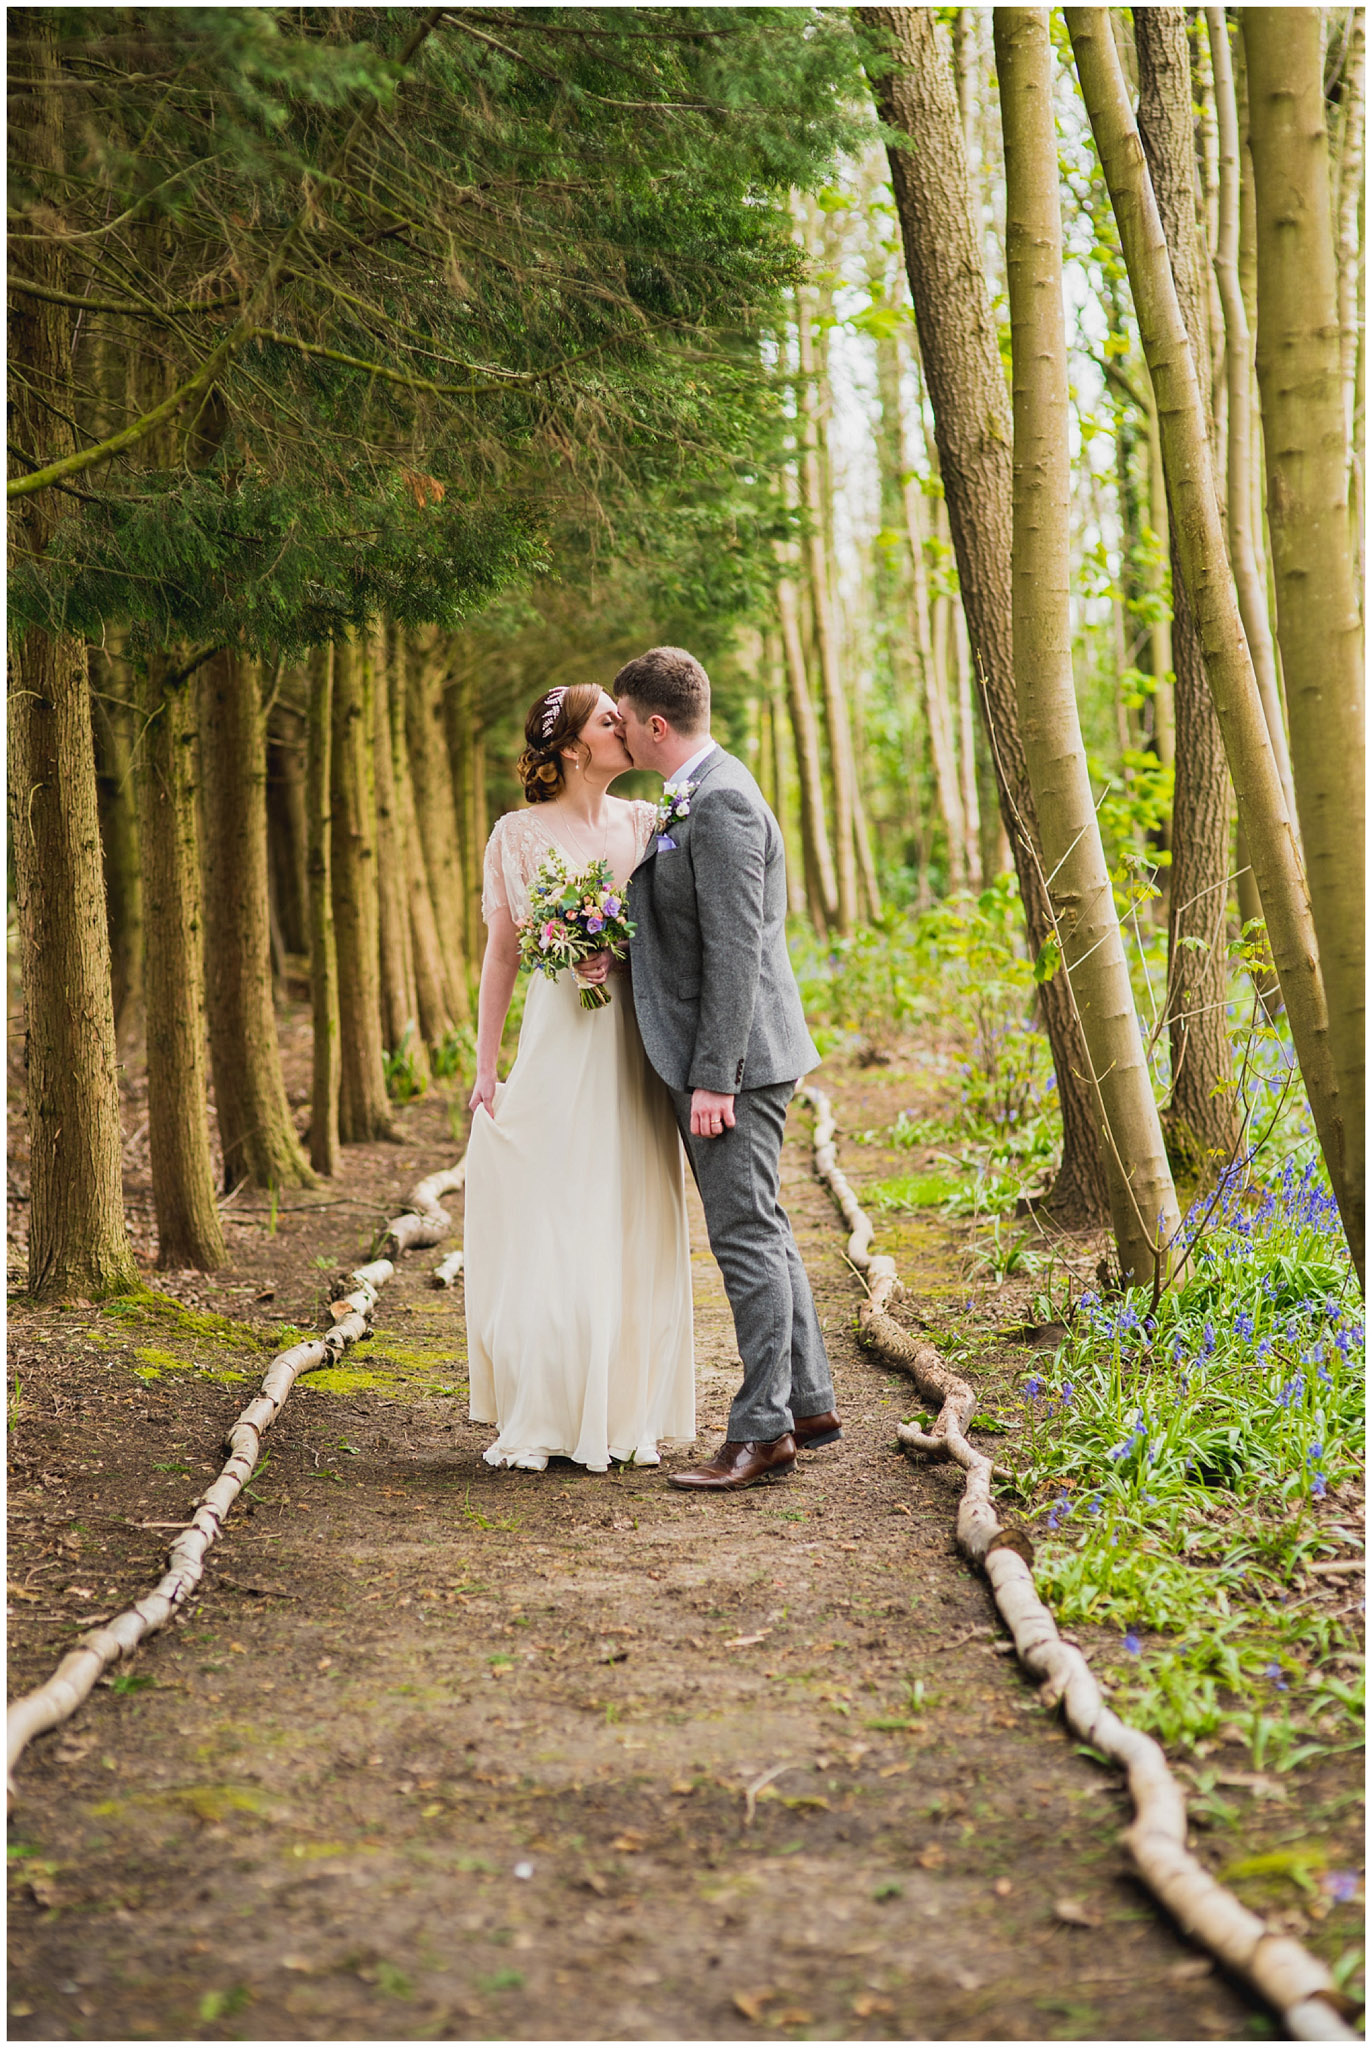 Sarah-&-Dan-The-Old-Vicarage-Wedding-Venue-Dorset-Photographer-33